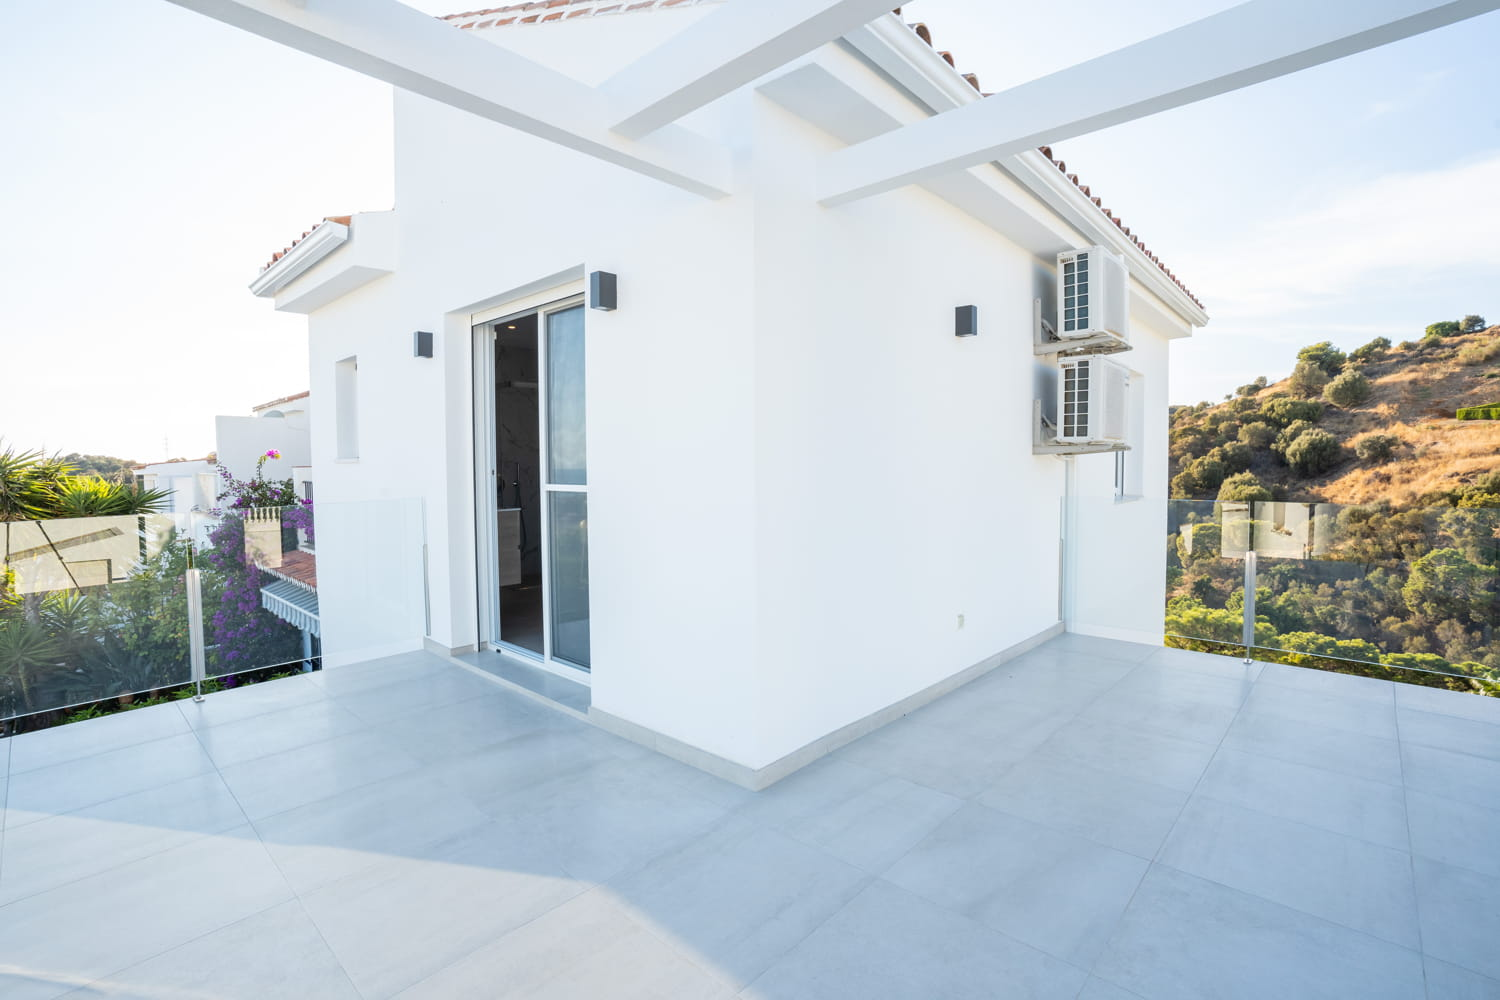 reforma integral villa mijas costa u projects (4)